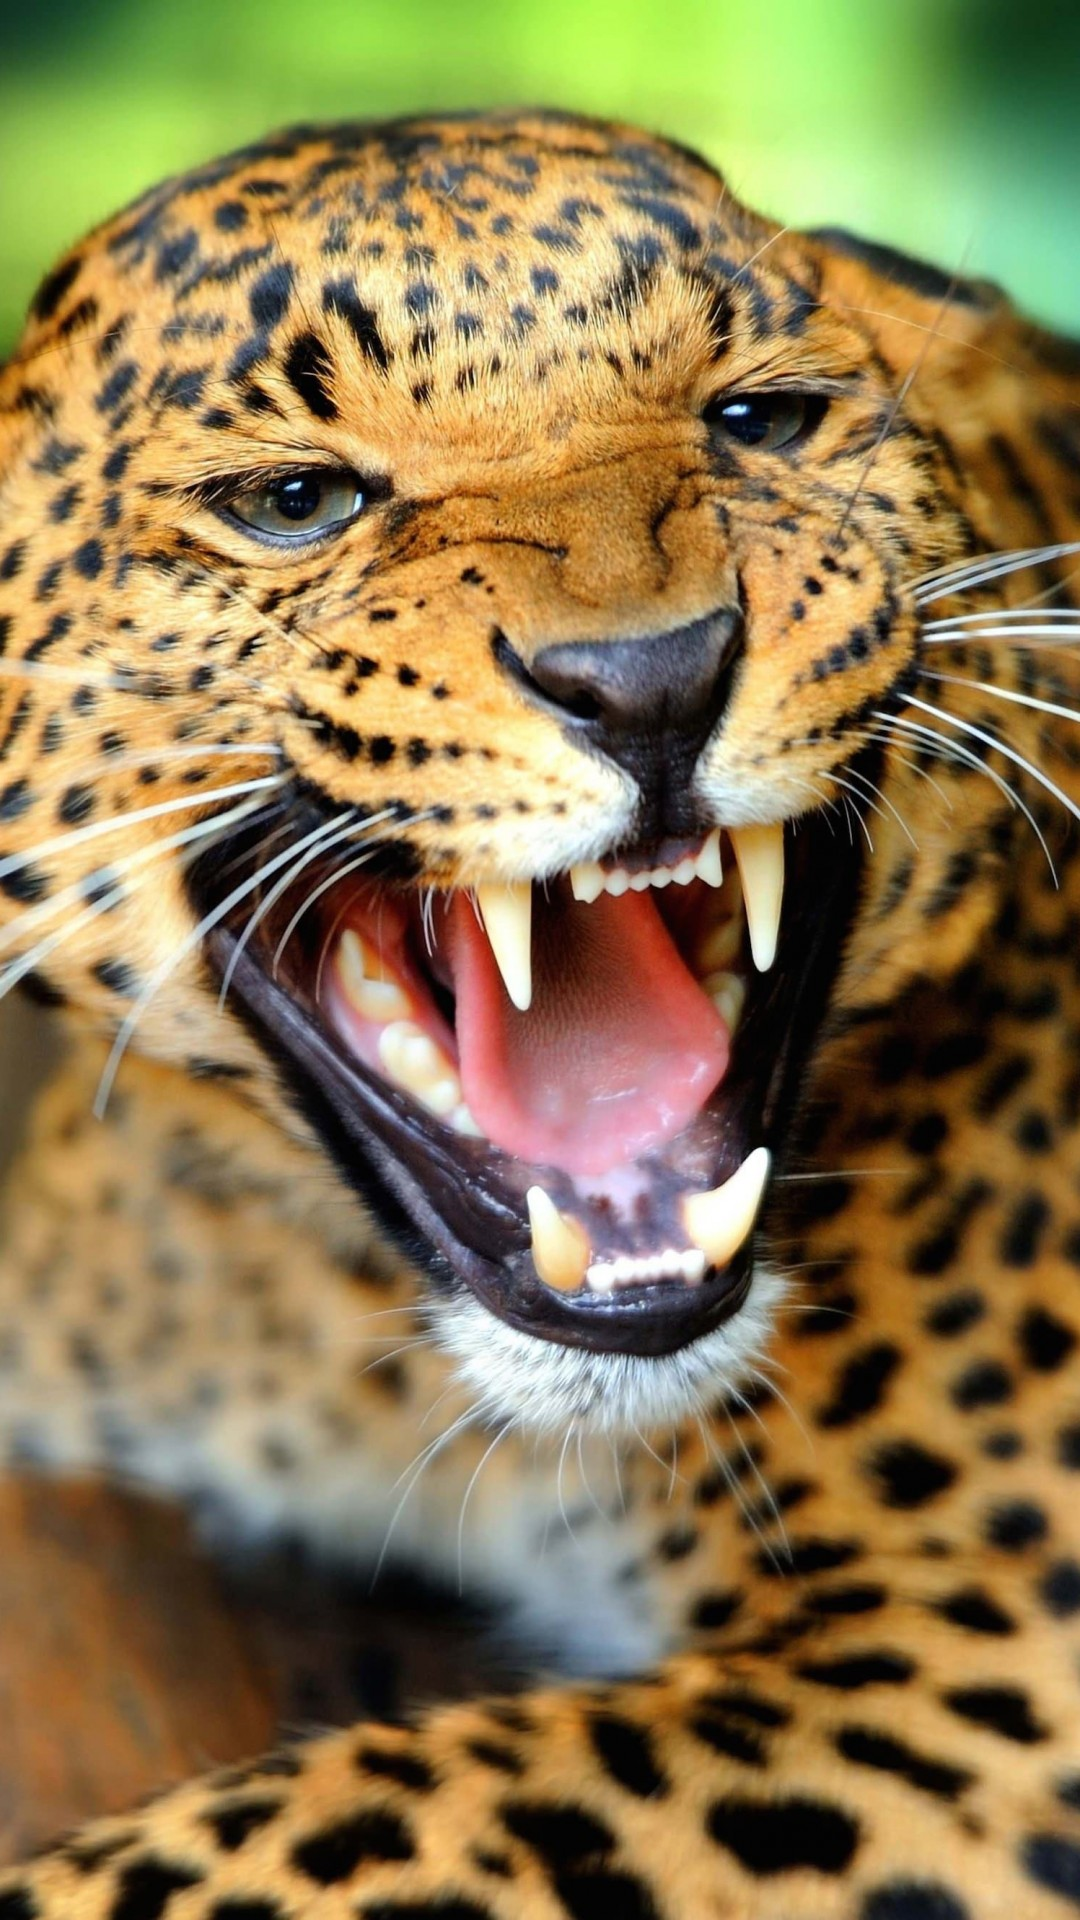 Growling Leopard Wallpaper for SAMSUNG Galaxy Note 3